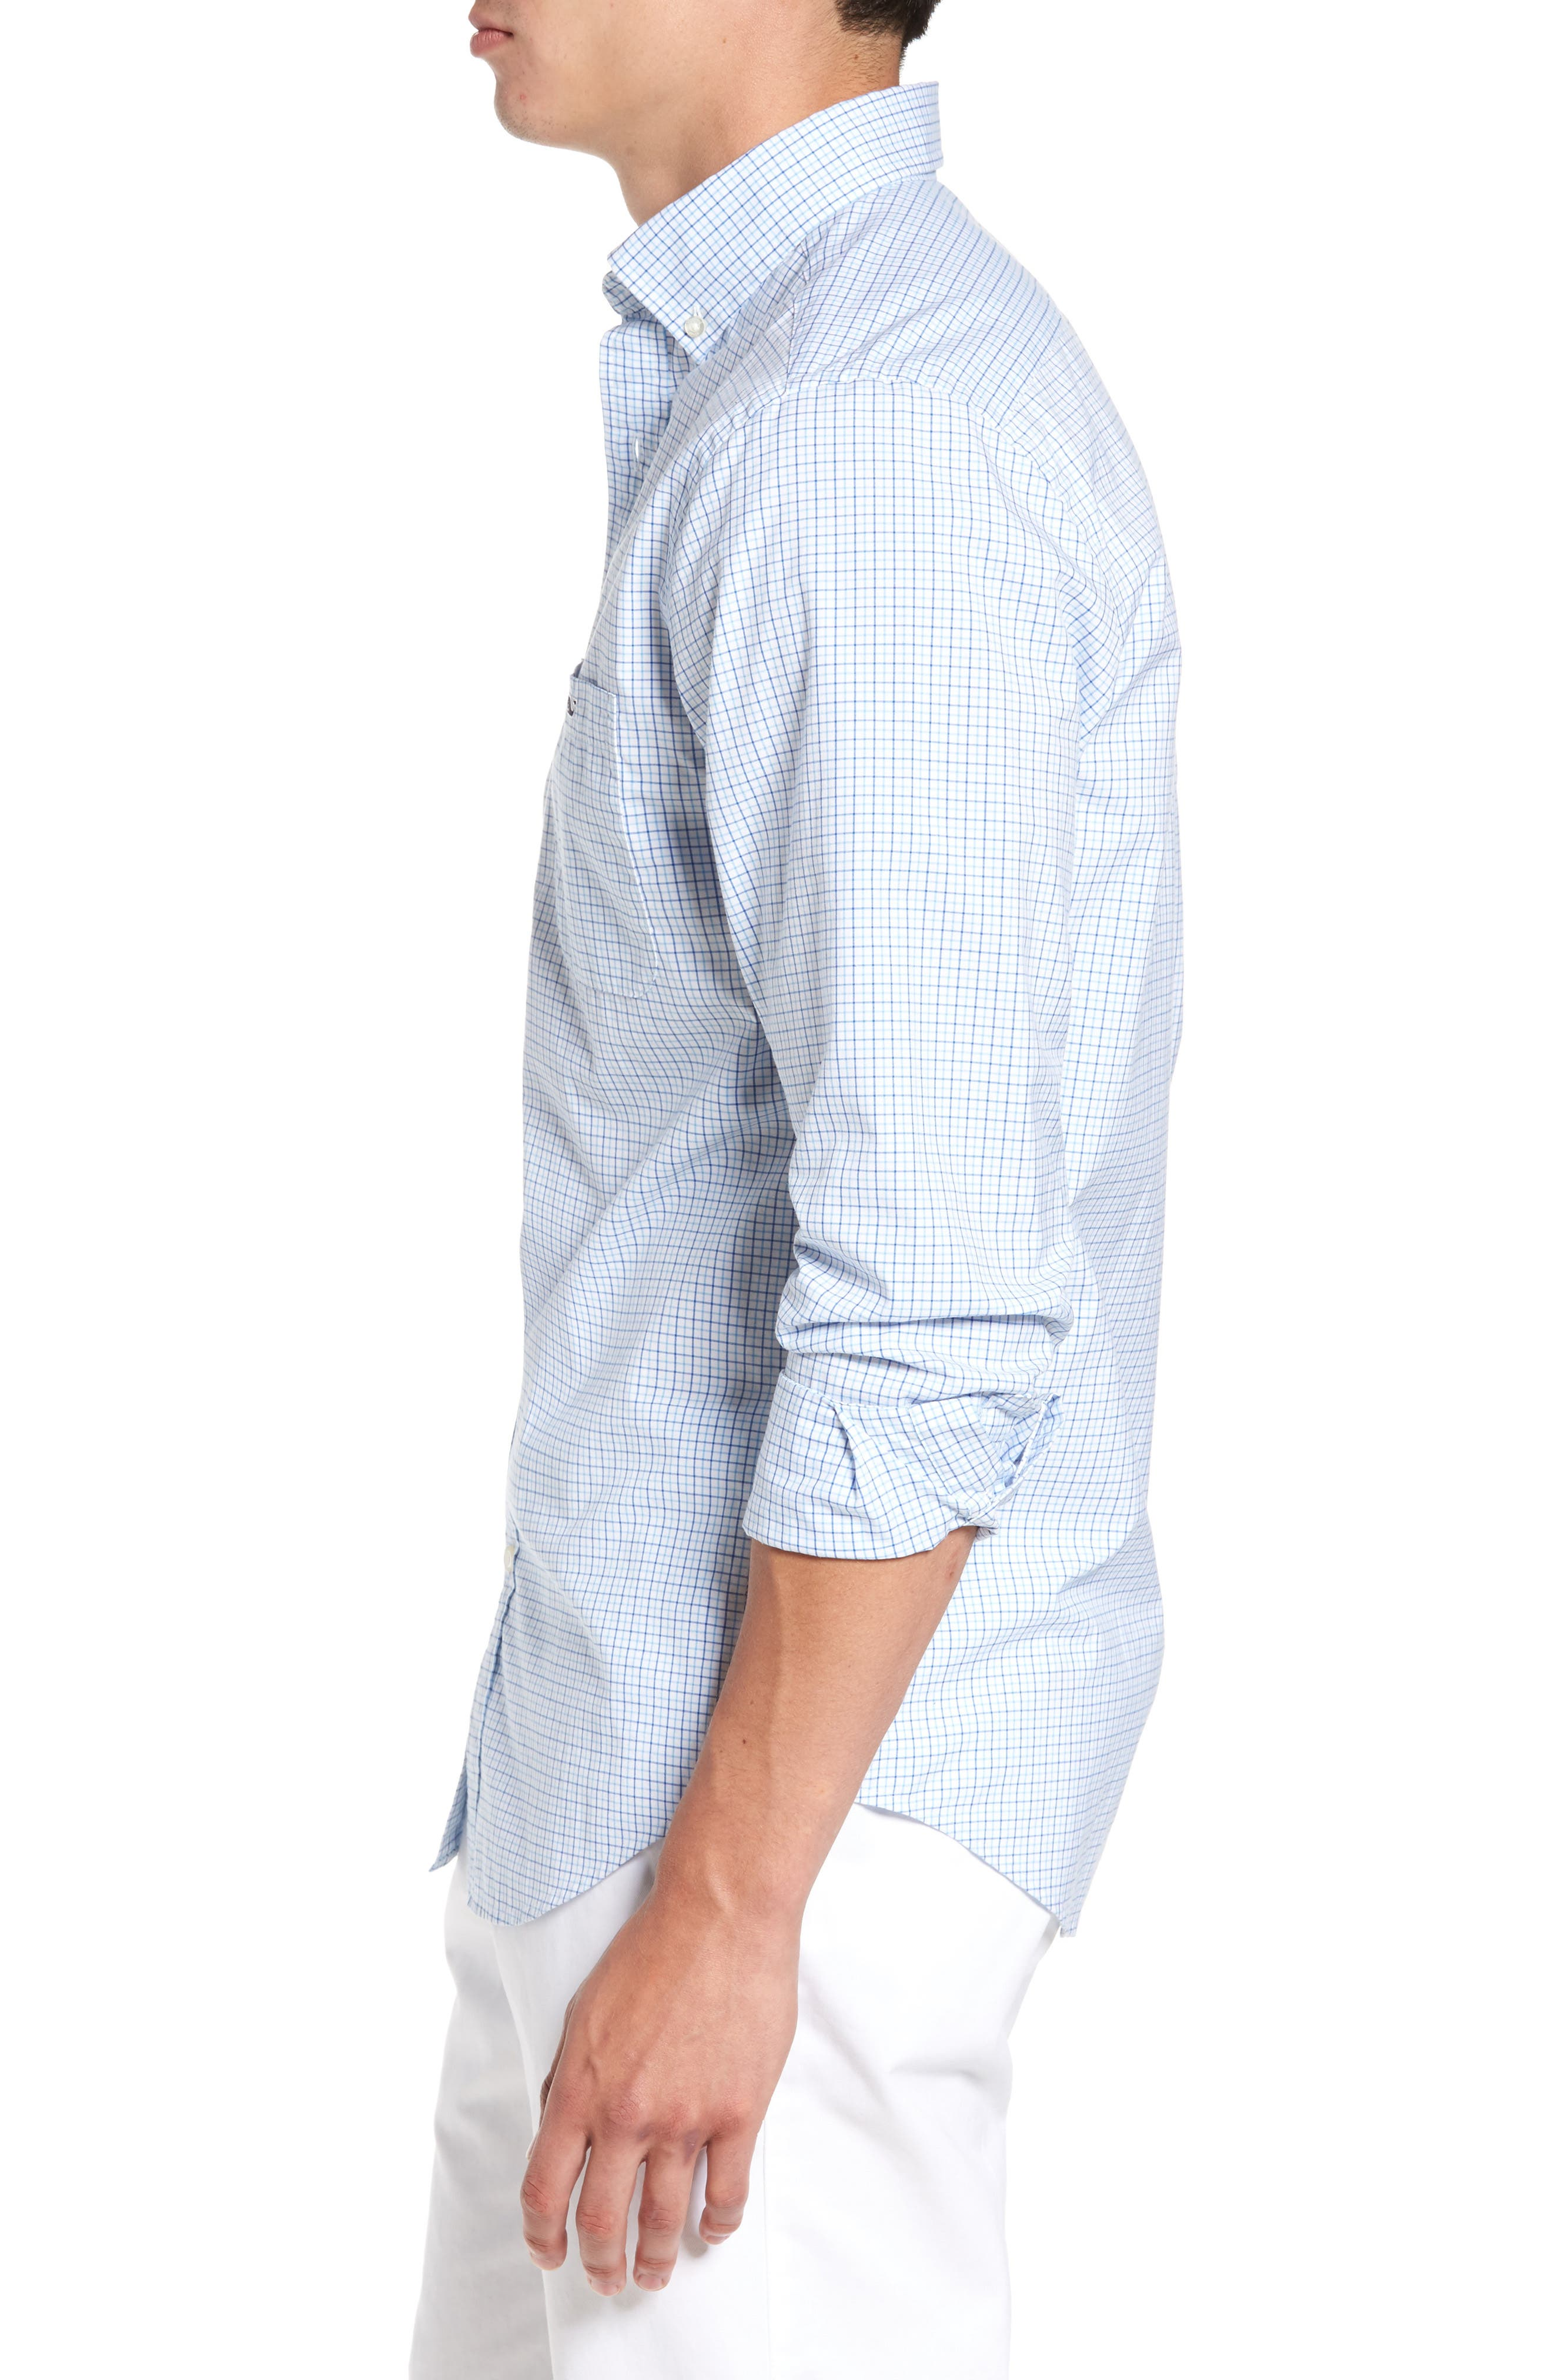 Twin Pond Classic Fit Tattersall Check Sport Shirt,                             Alternate thumbnail 3, color,                             484